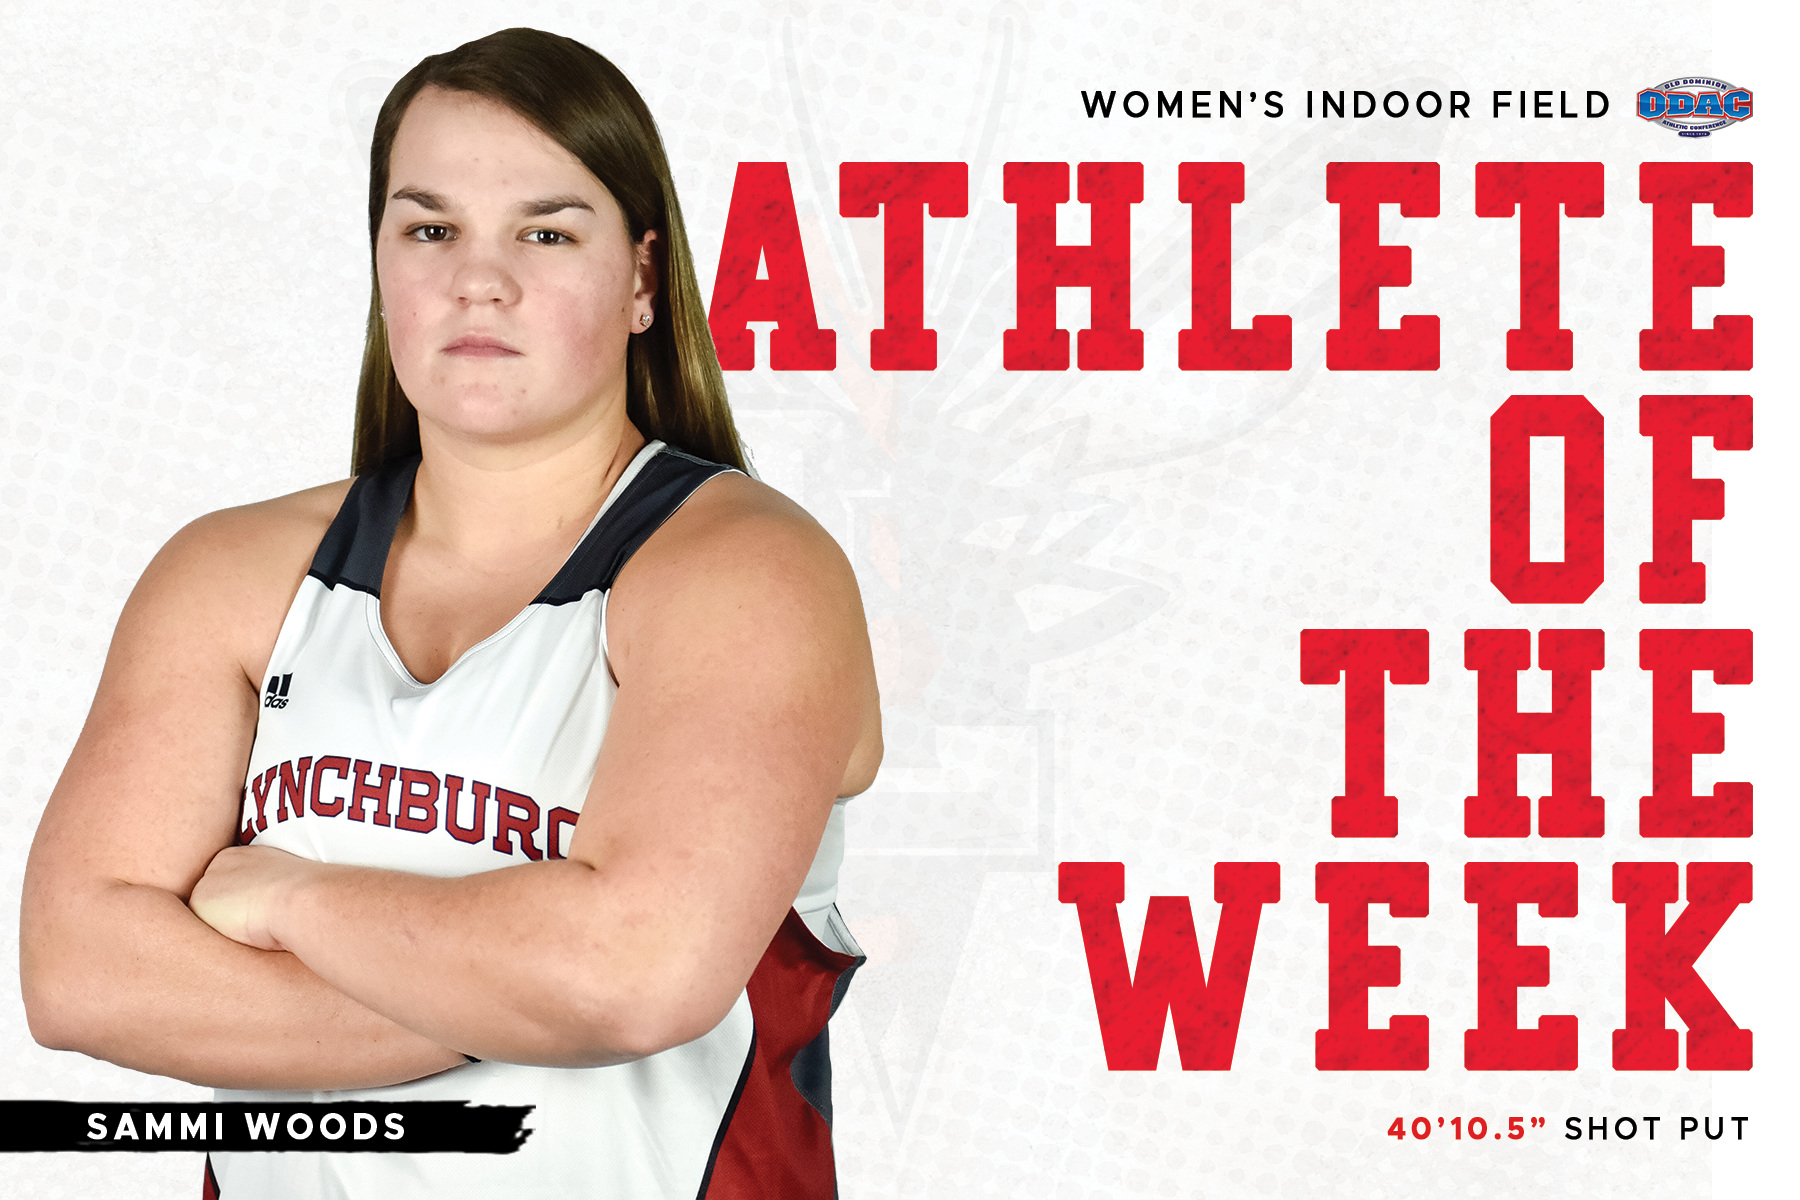 Sammi Woods standing arms crossed in uniform atop white and red athlete of the week graphic